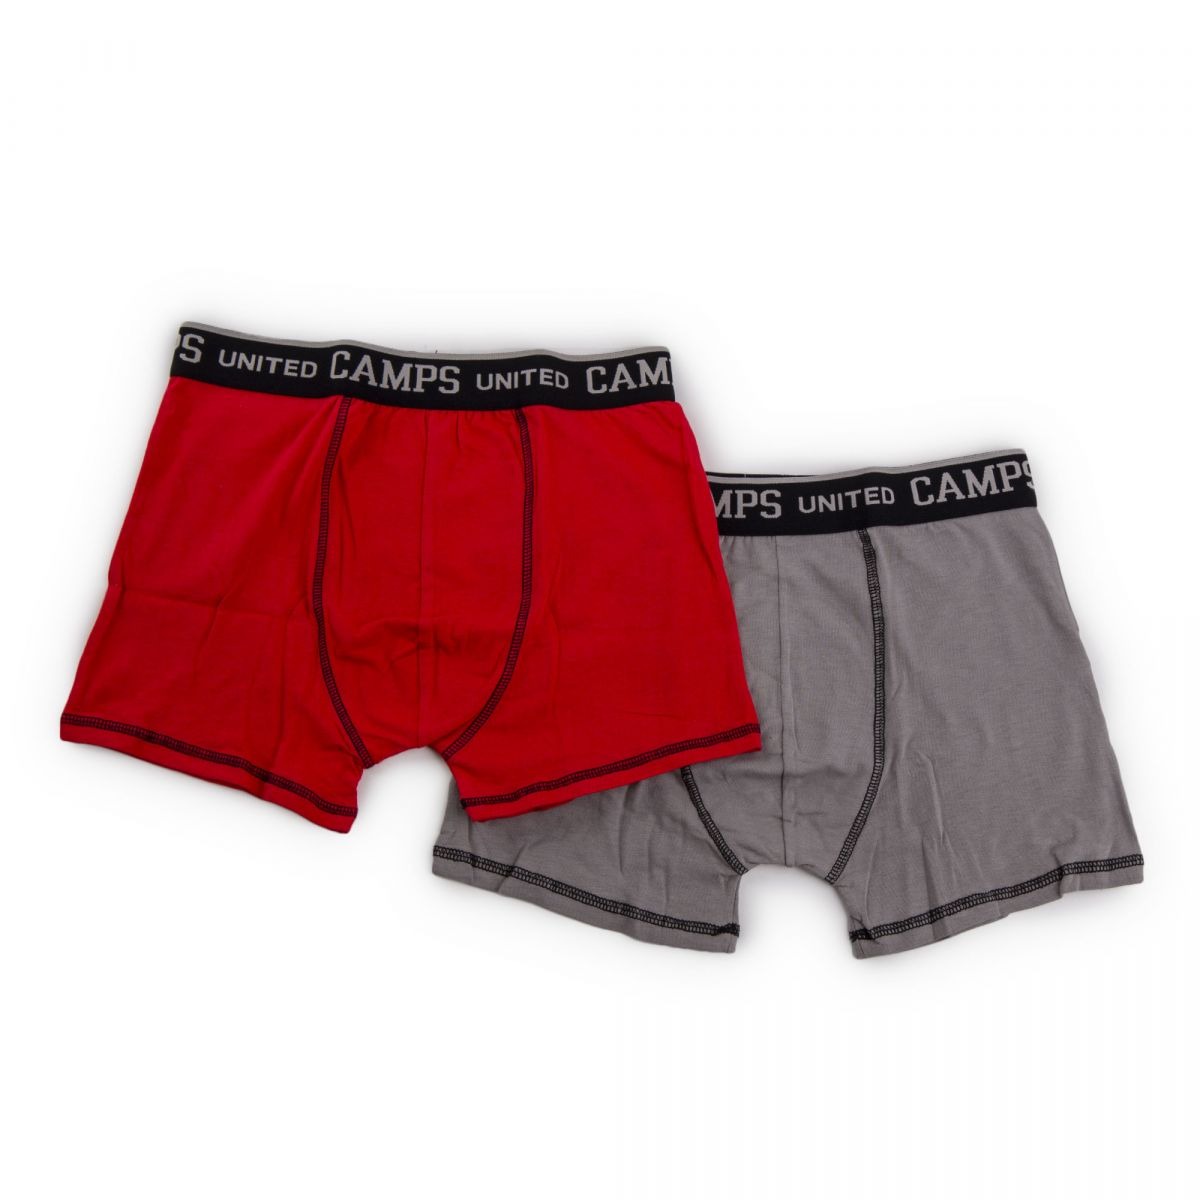 lot de 2 boxers unis coton homme camps united prix. Black Bedroom Furniture Sets. Home Design Ideas